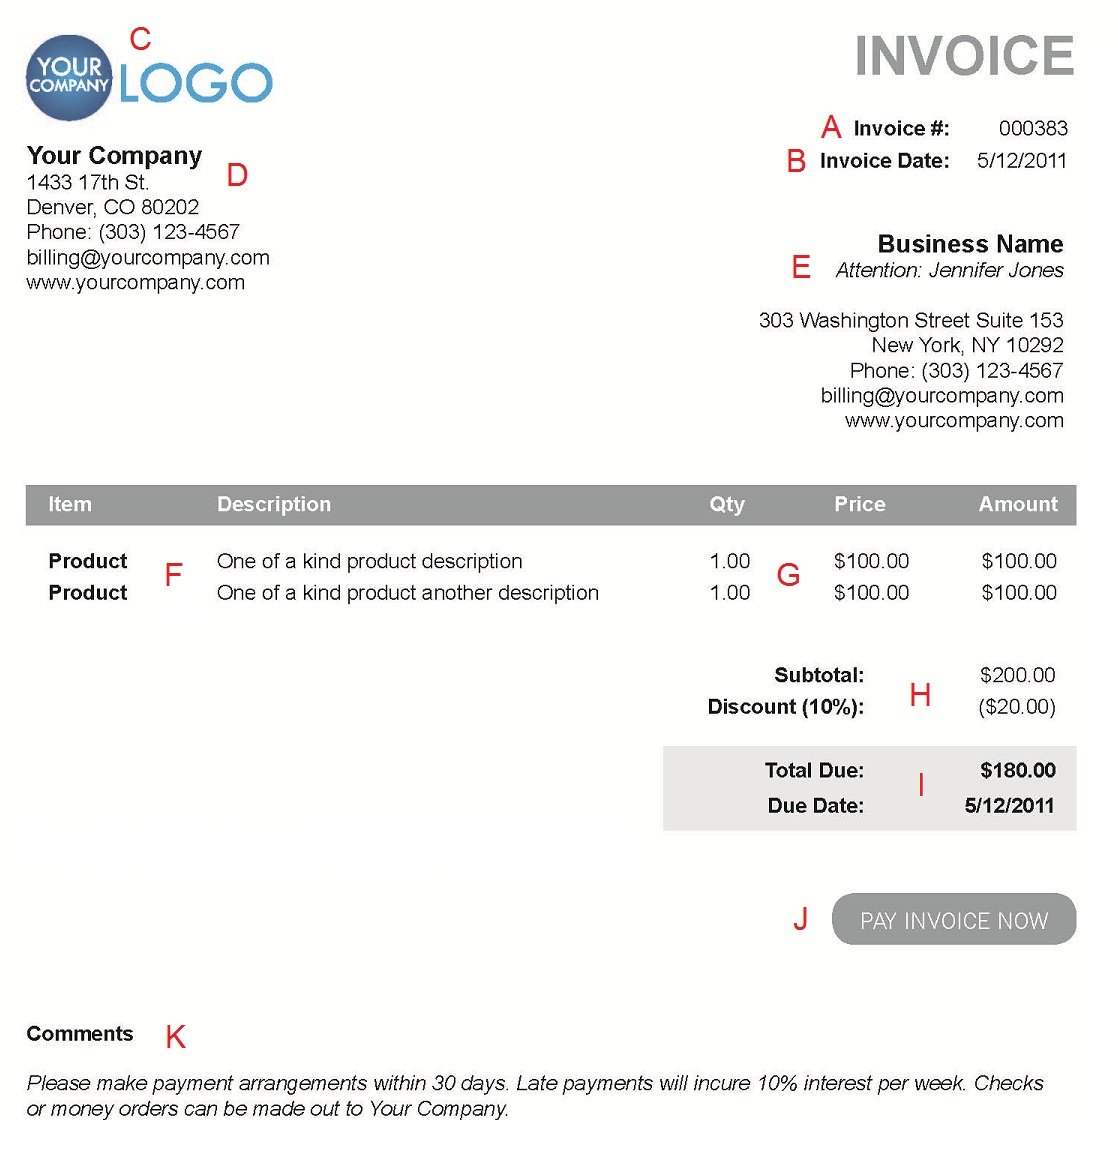 Reliefworkersus  Sweet The  Different Sections Of An Electronic Payment Invoice With Interesting A  With Nice Tax Invoice Excel Template Also Online Invoicing Service In Addition Apple Invoice Software And Dodge Invoice Price As Well As Send Invoice To Buyer Additionally Proforma Invoice Format For Advance Payment From Paysimplecom With Reliefworkersus  Interesting The  Different Sections Of An Electronic Payment Invoice With Nice A  And Sweet Tax Invoice Excel Template Also Online Invoicing Service In Addition Apple Invoice Software From Paysimplecom